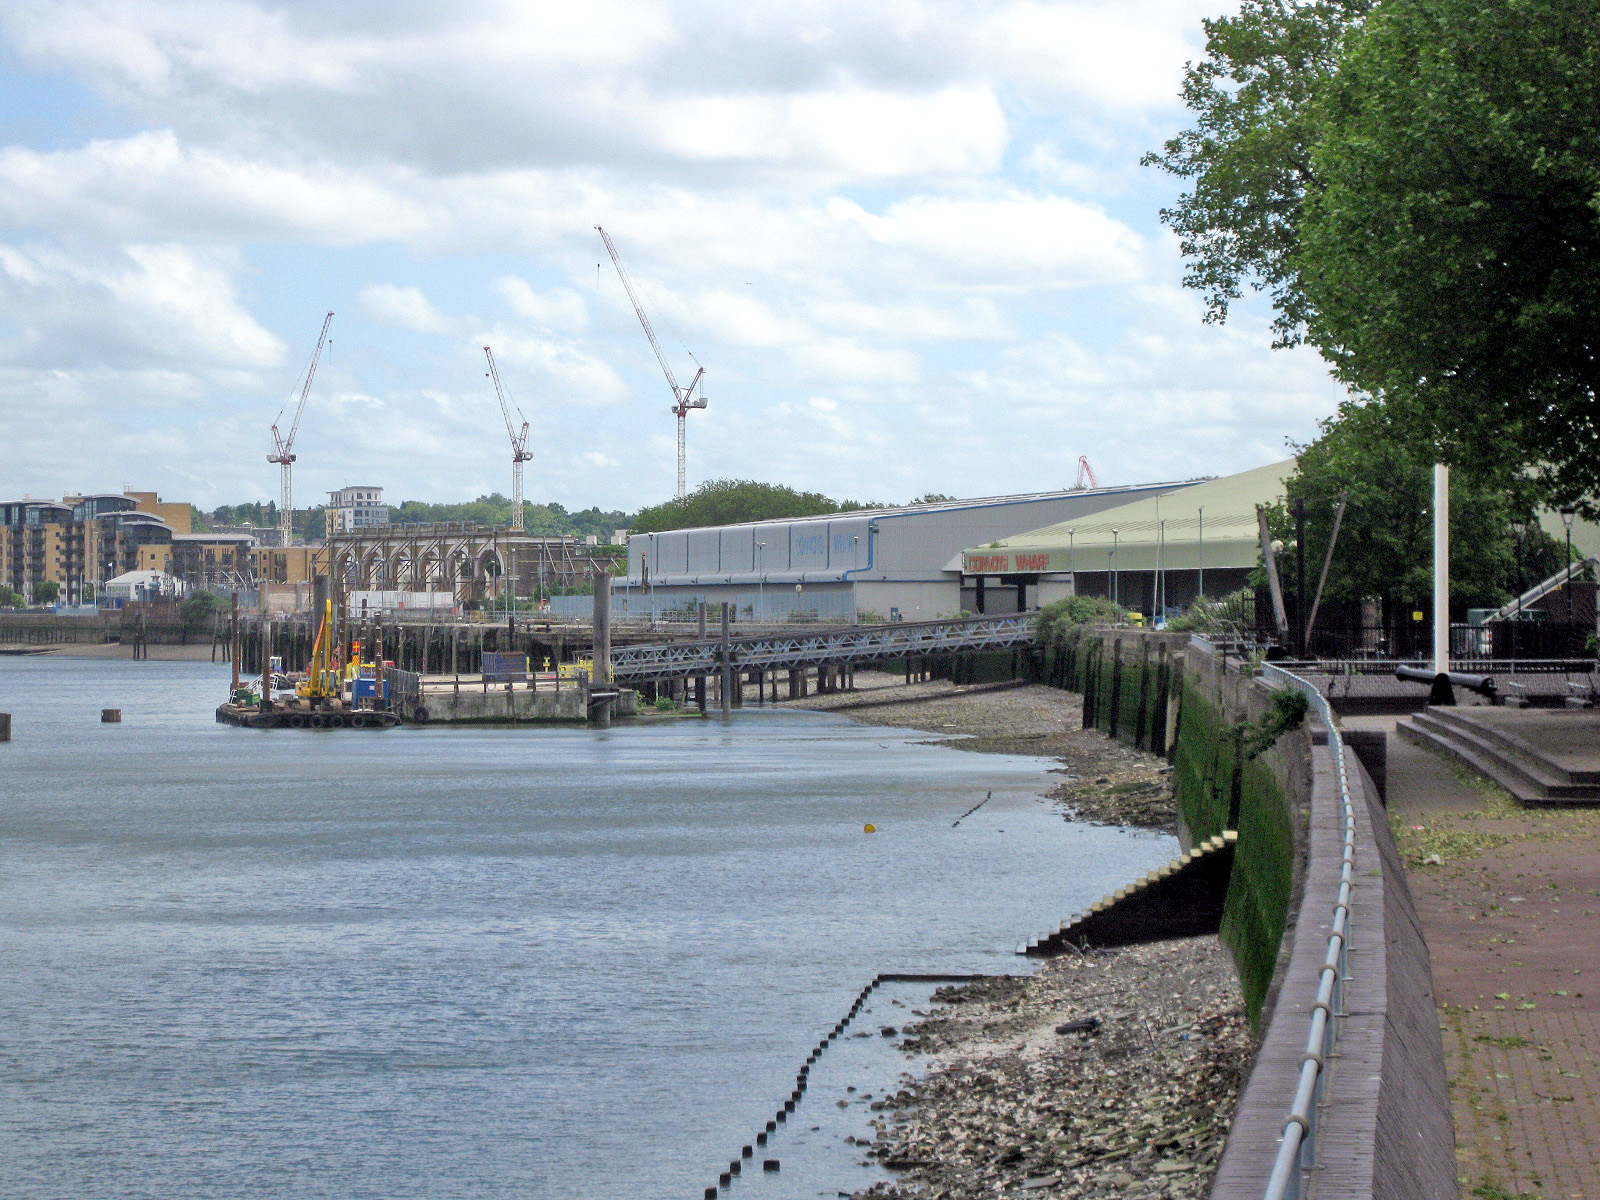 View of Convoys Wharf from the Thames Path